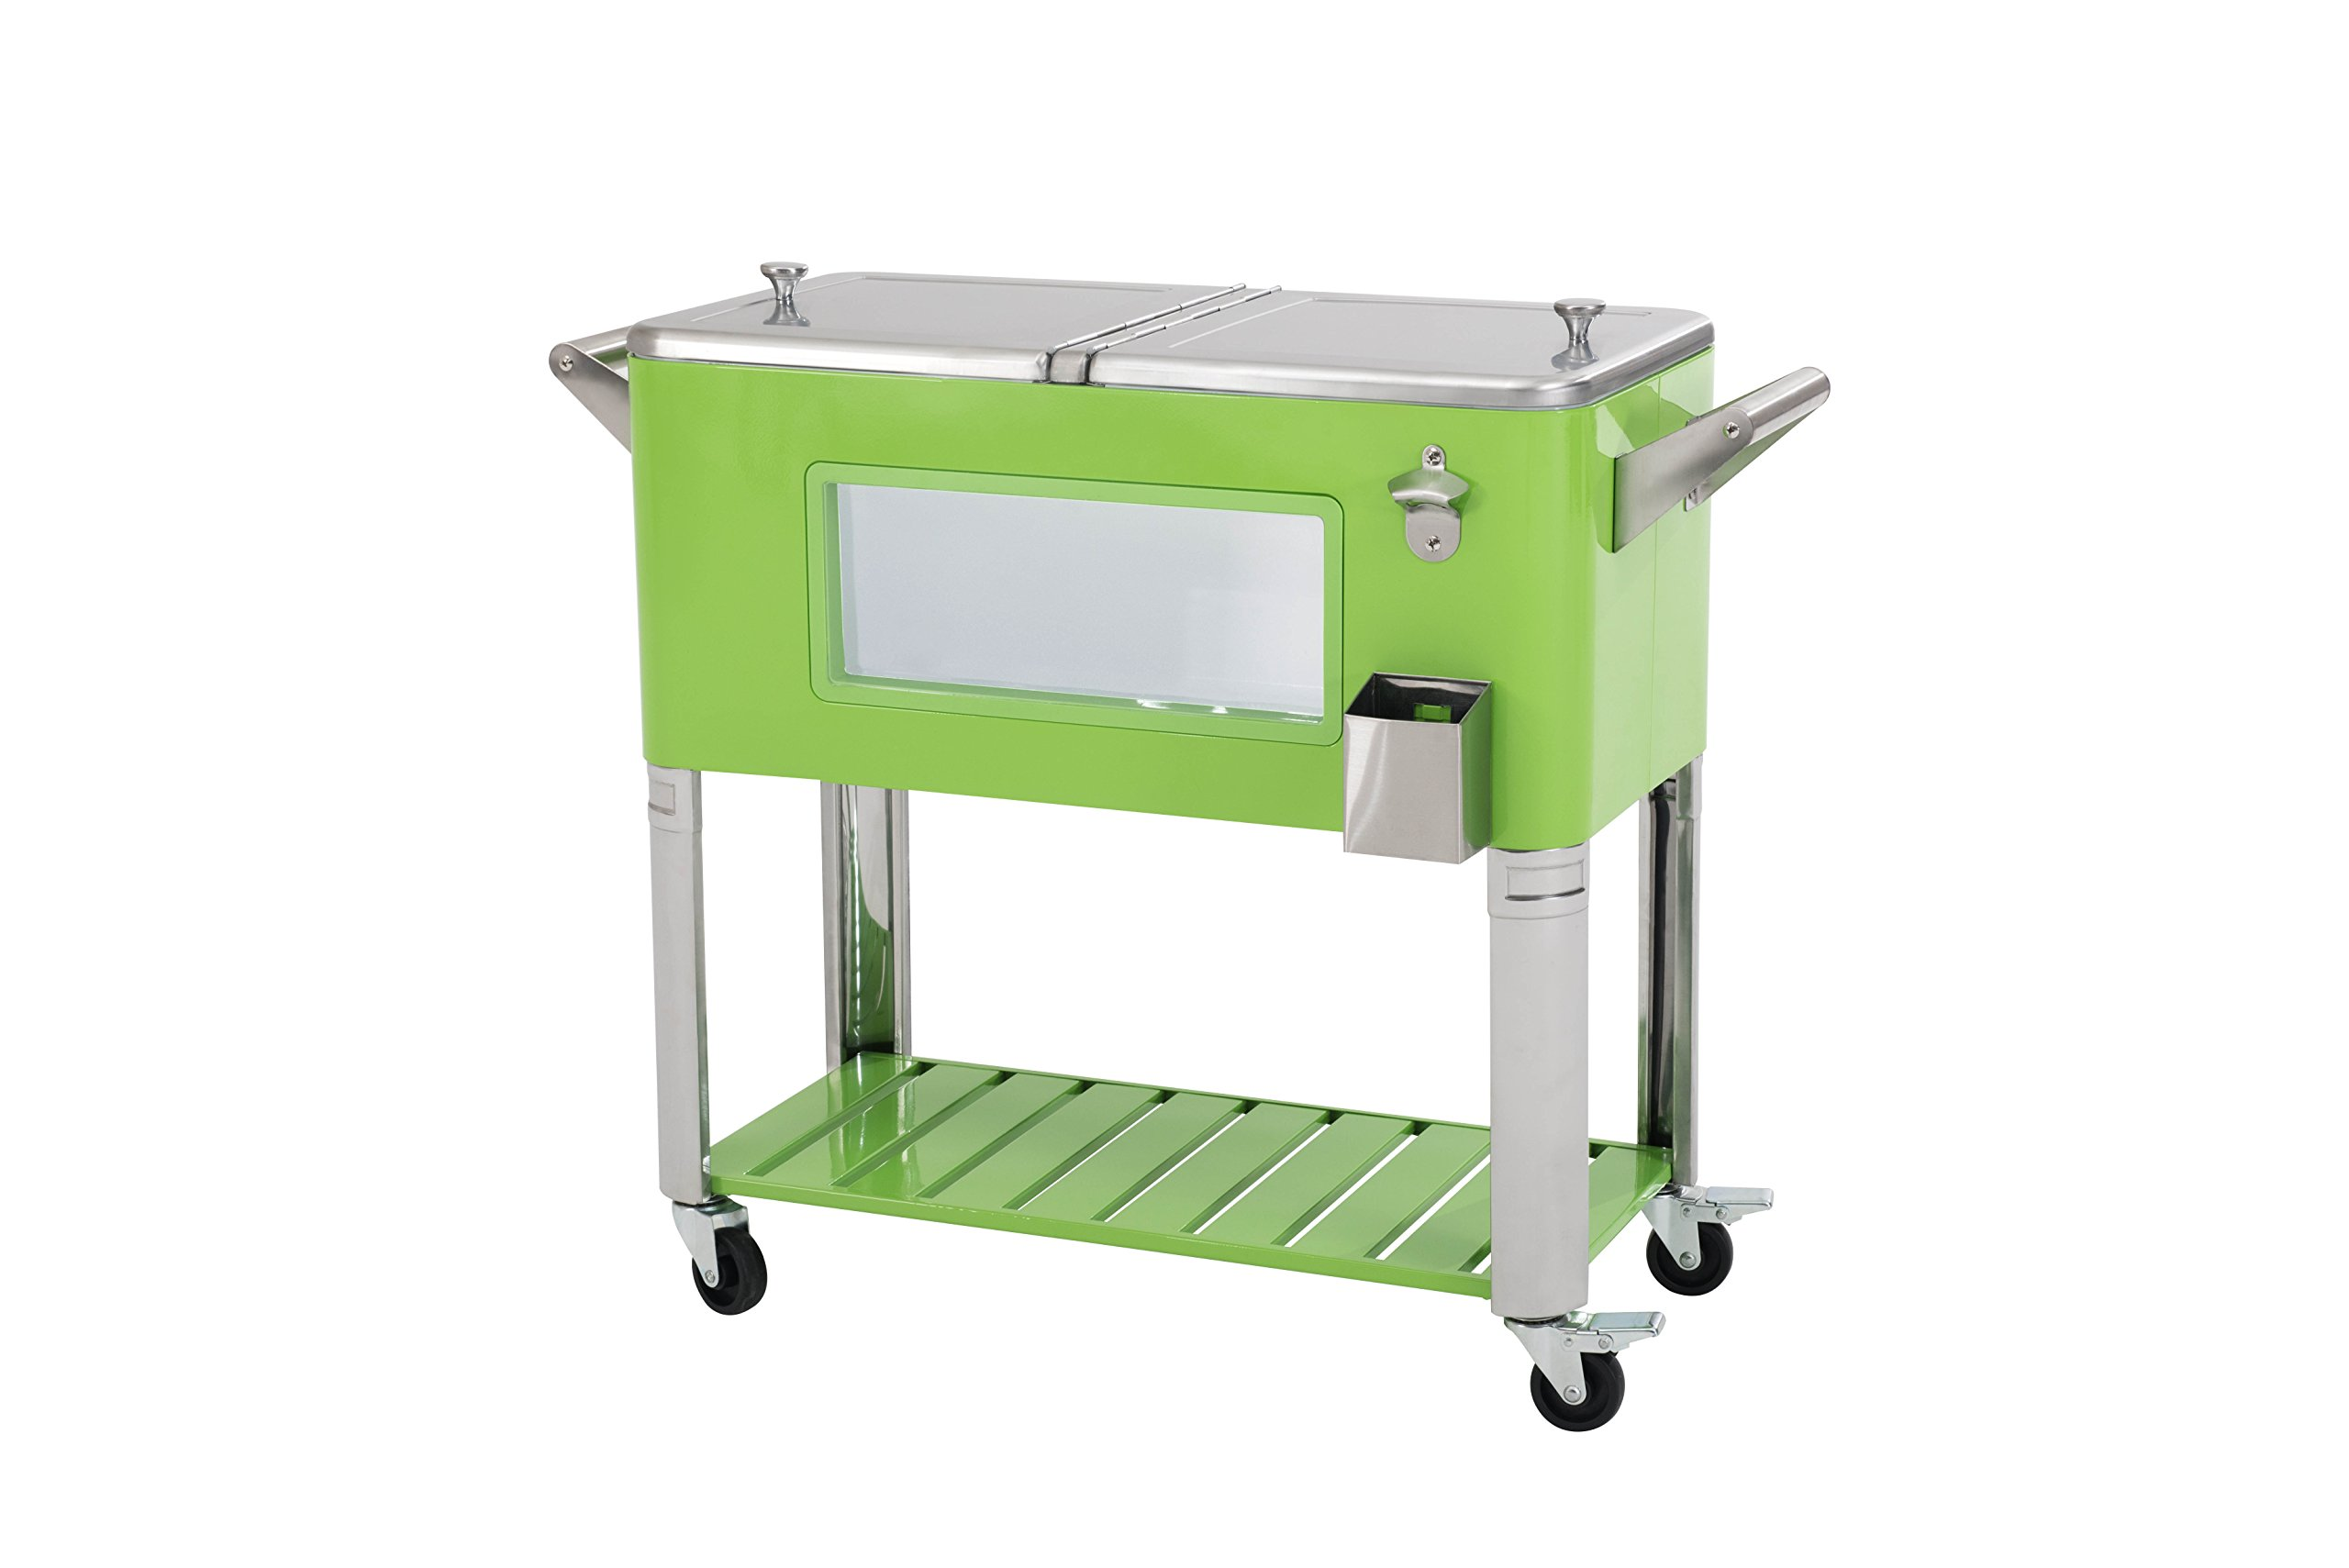 Sunjoy 80 Qt Patio Cooler with LED Lights-green, green by sunjoy